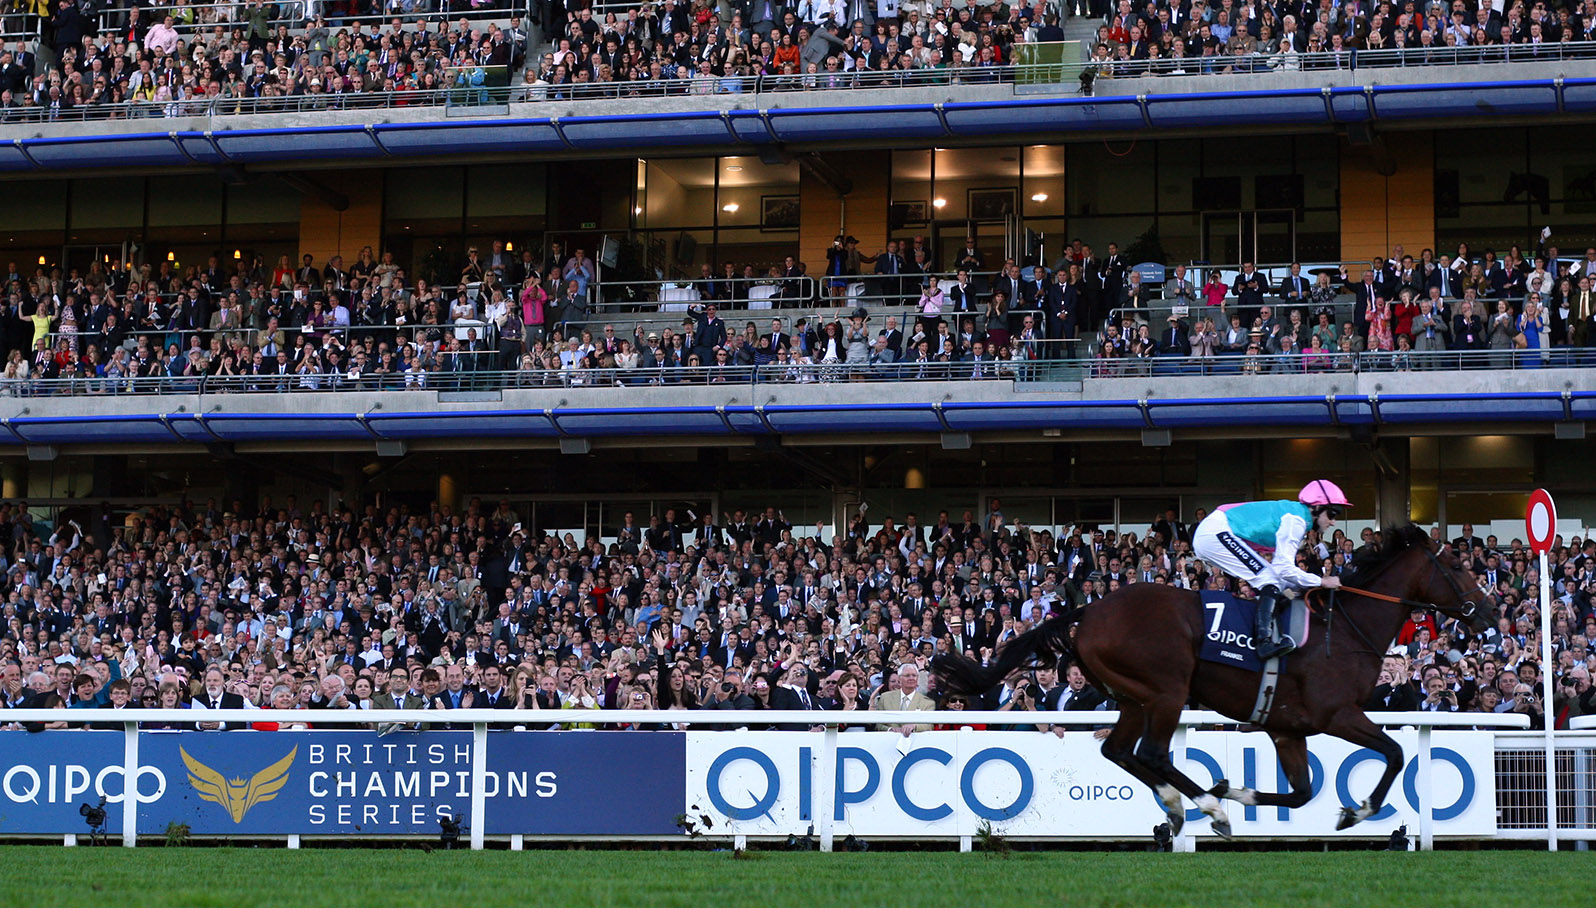 Frankel winning the 2011 Queen Elizabeth II Stakes at Ascot's Champions Day. Photo: Turnberry Consulting